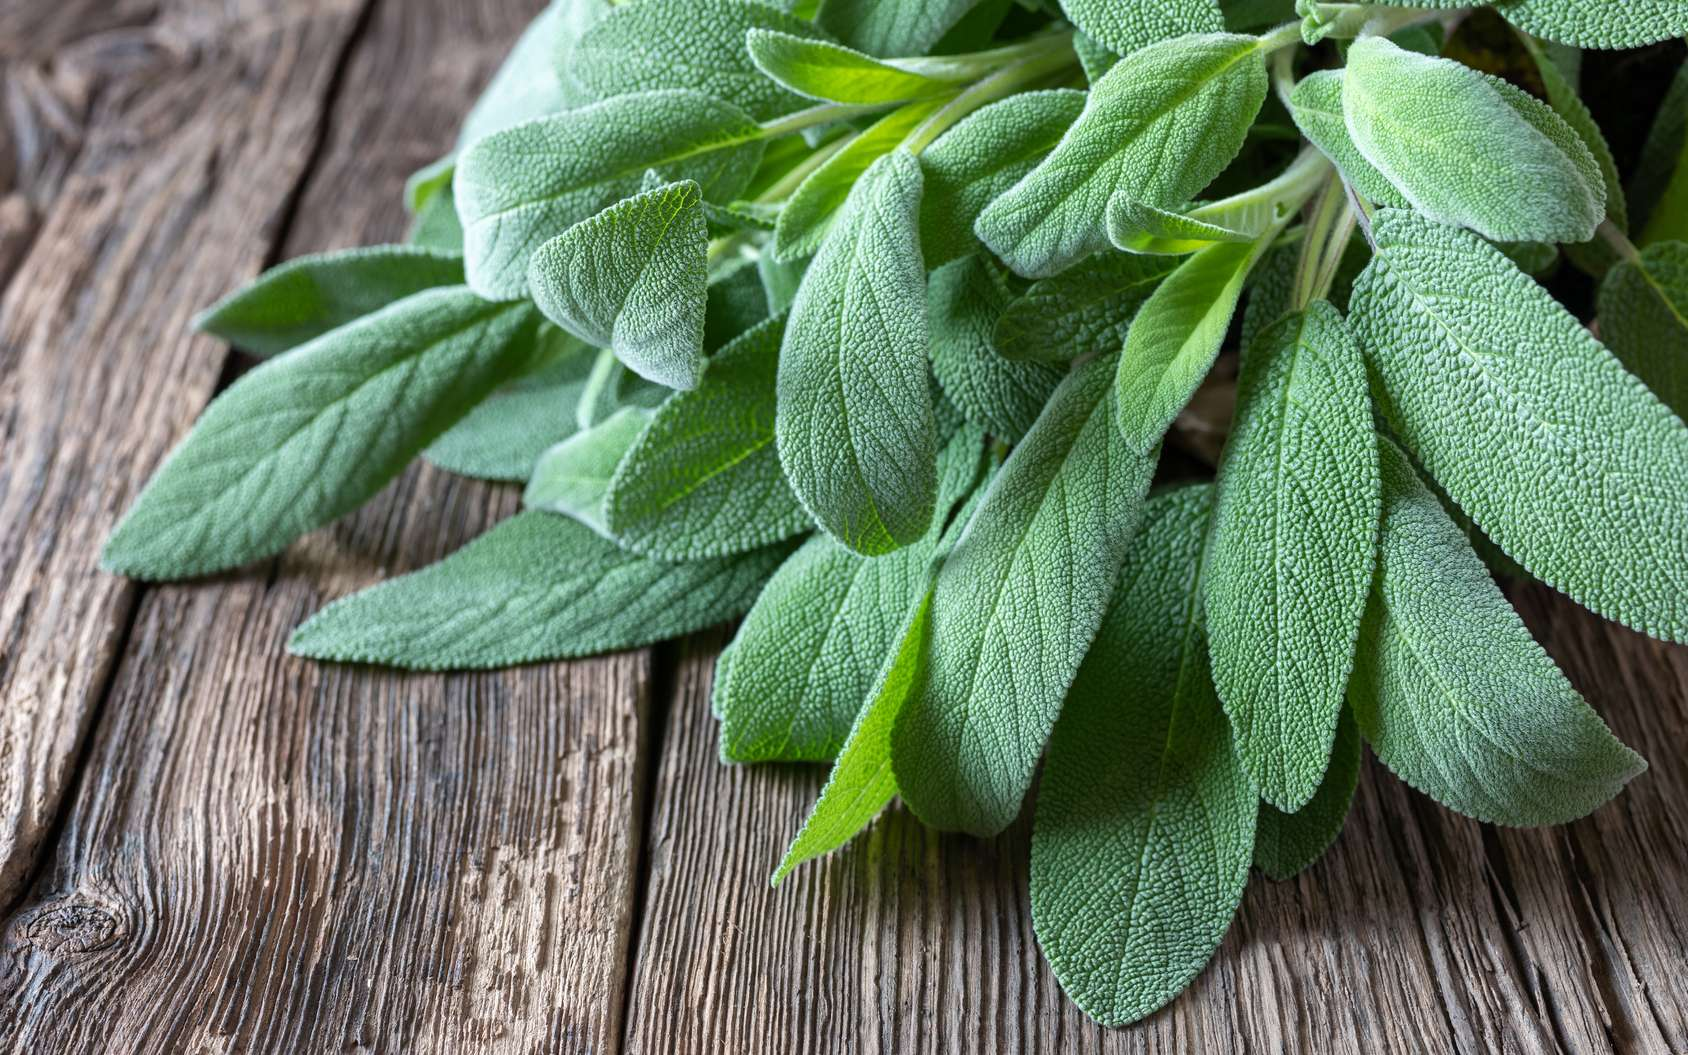 What are the benefits of officinal sage?